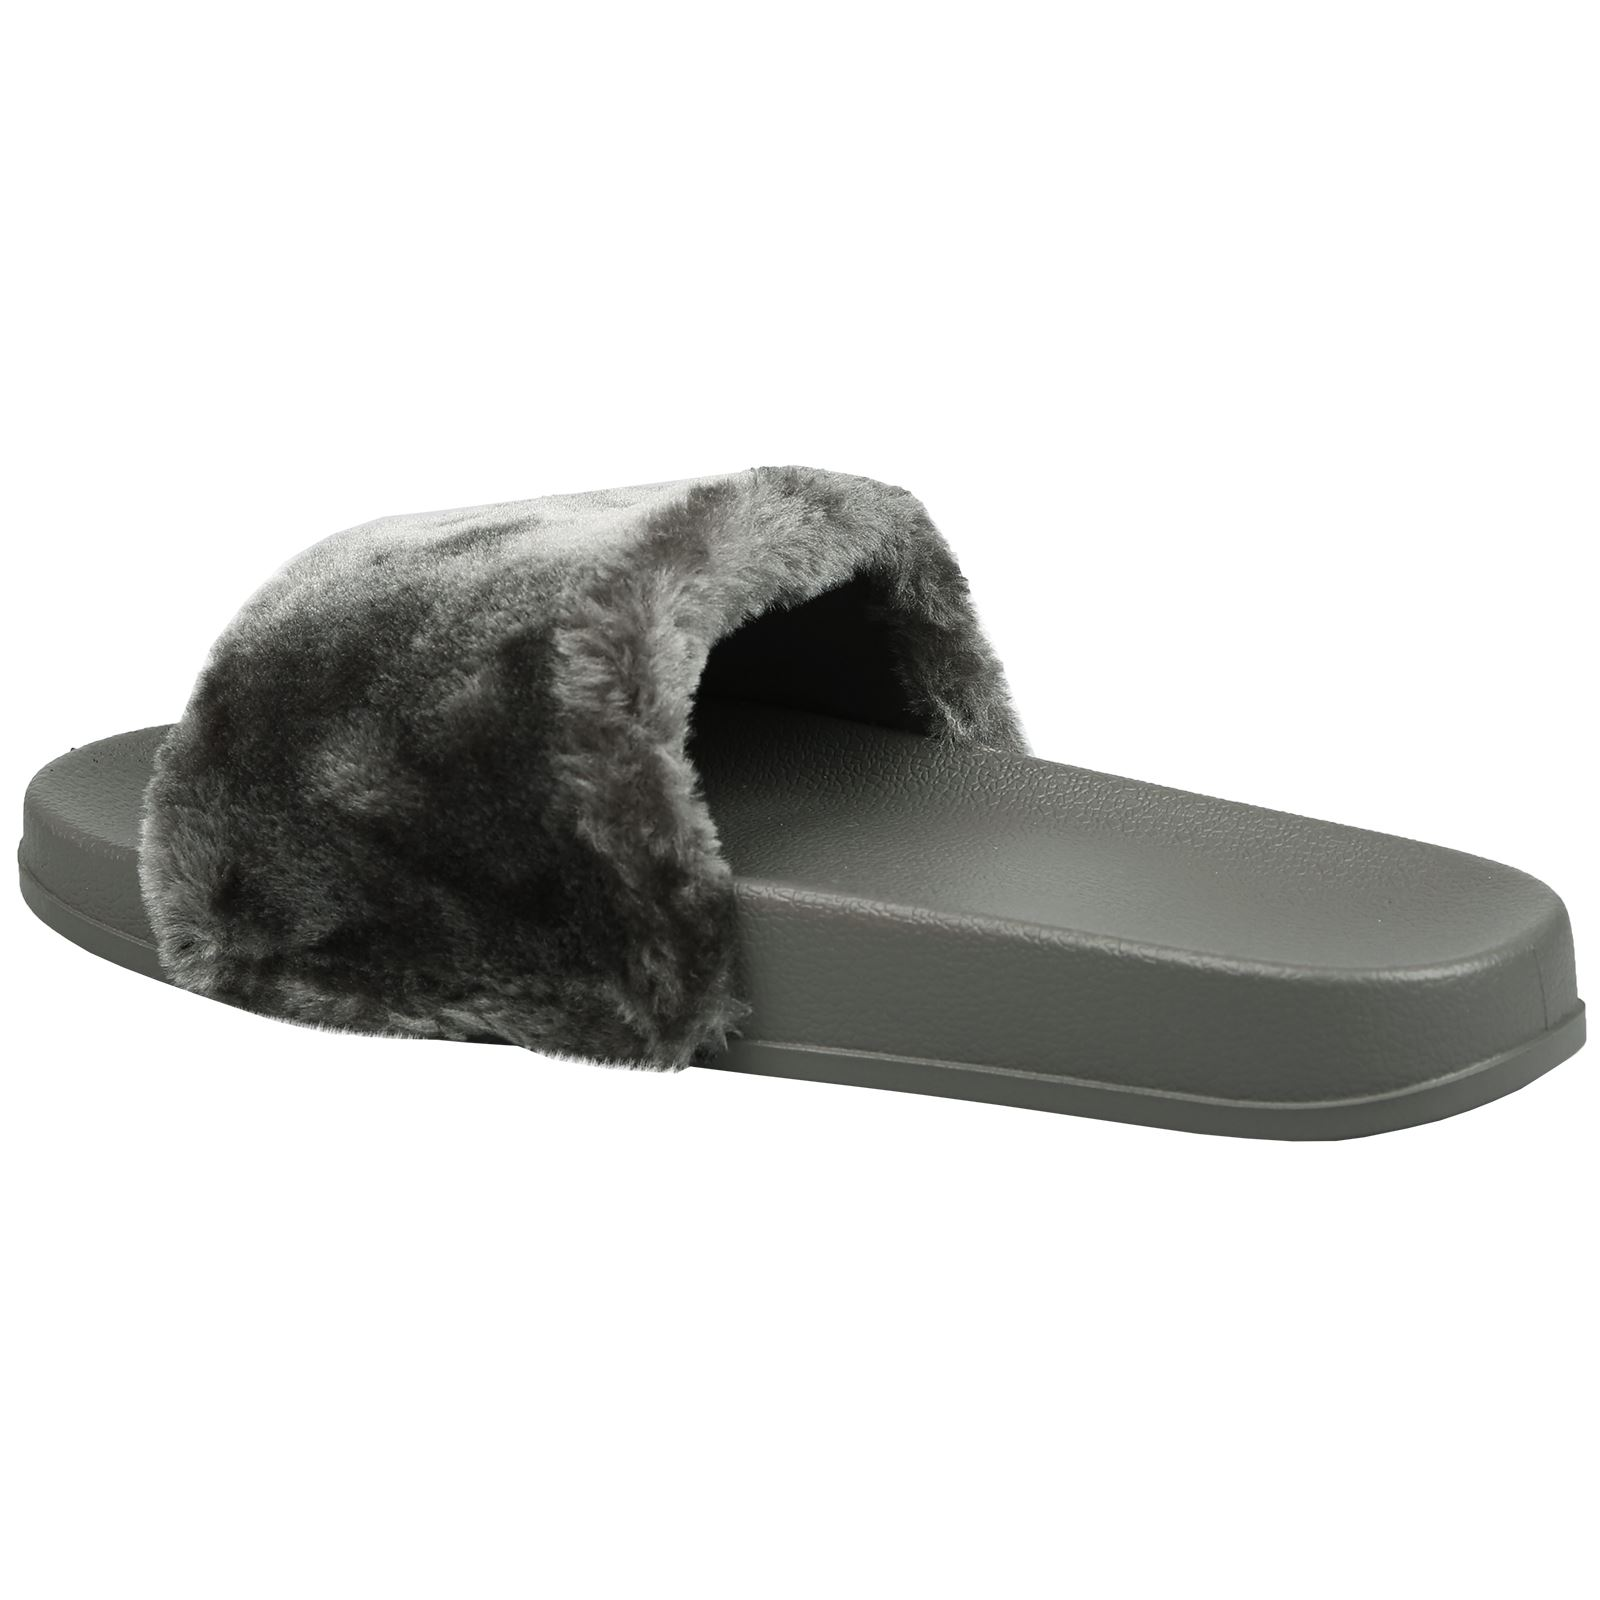 a2417ccc4 Romy Womens Slip On Fur Trim Flat Sandals Flip Flops Ladies Shoes ...